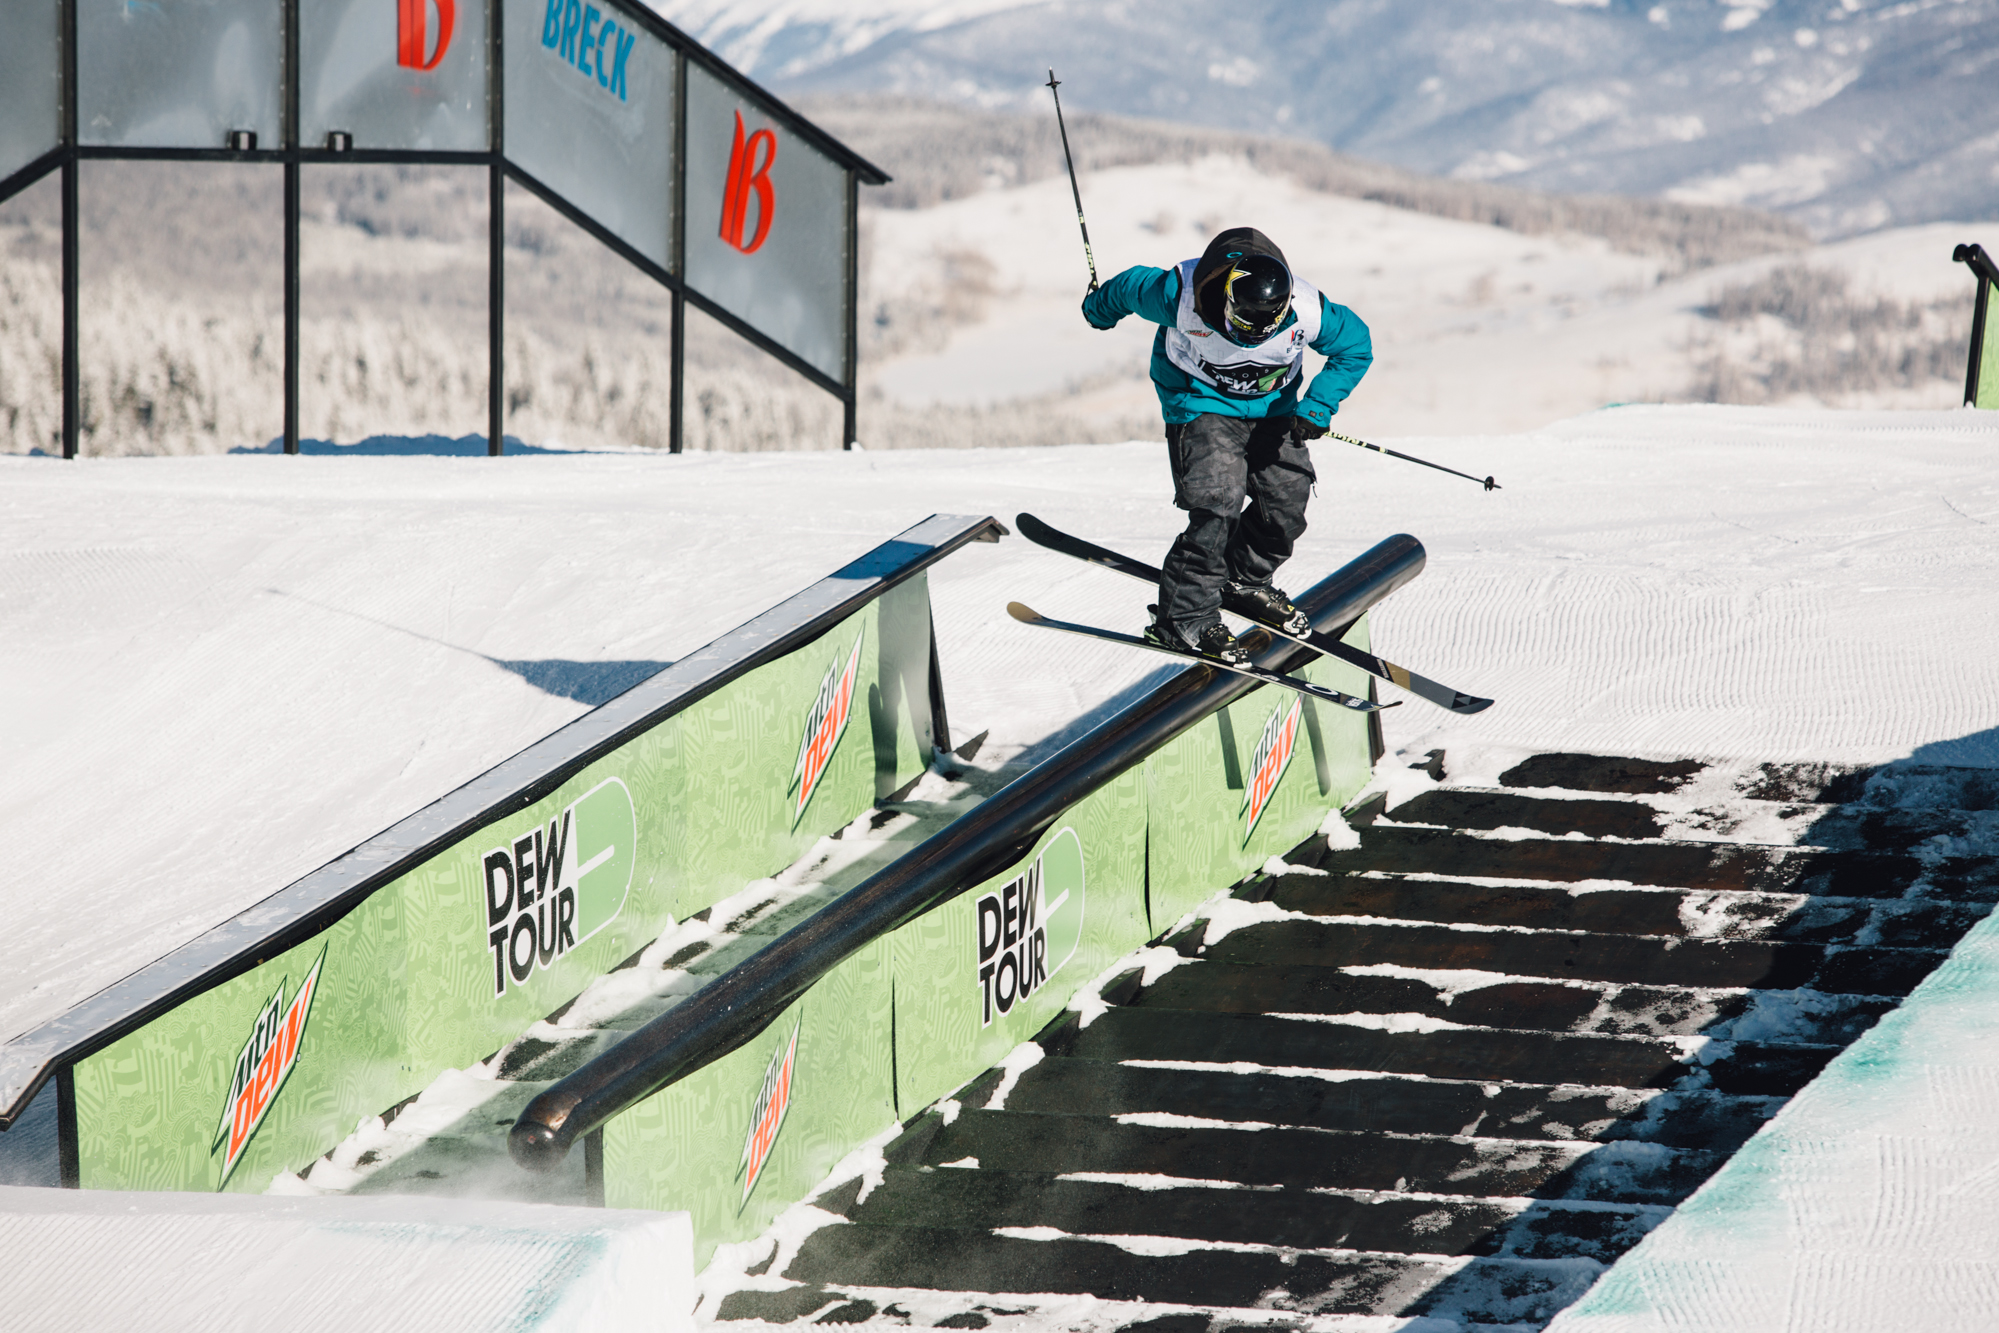 Joss Christensen during the men's slopestyle event at Breckenridge's Dew Tour. PHOTO: Dew Tour